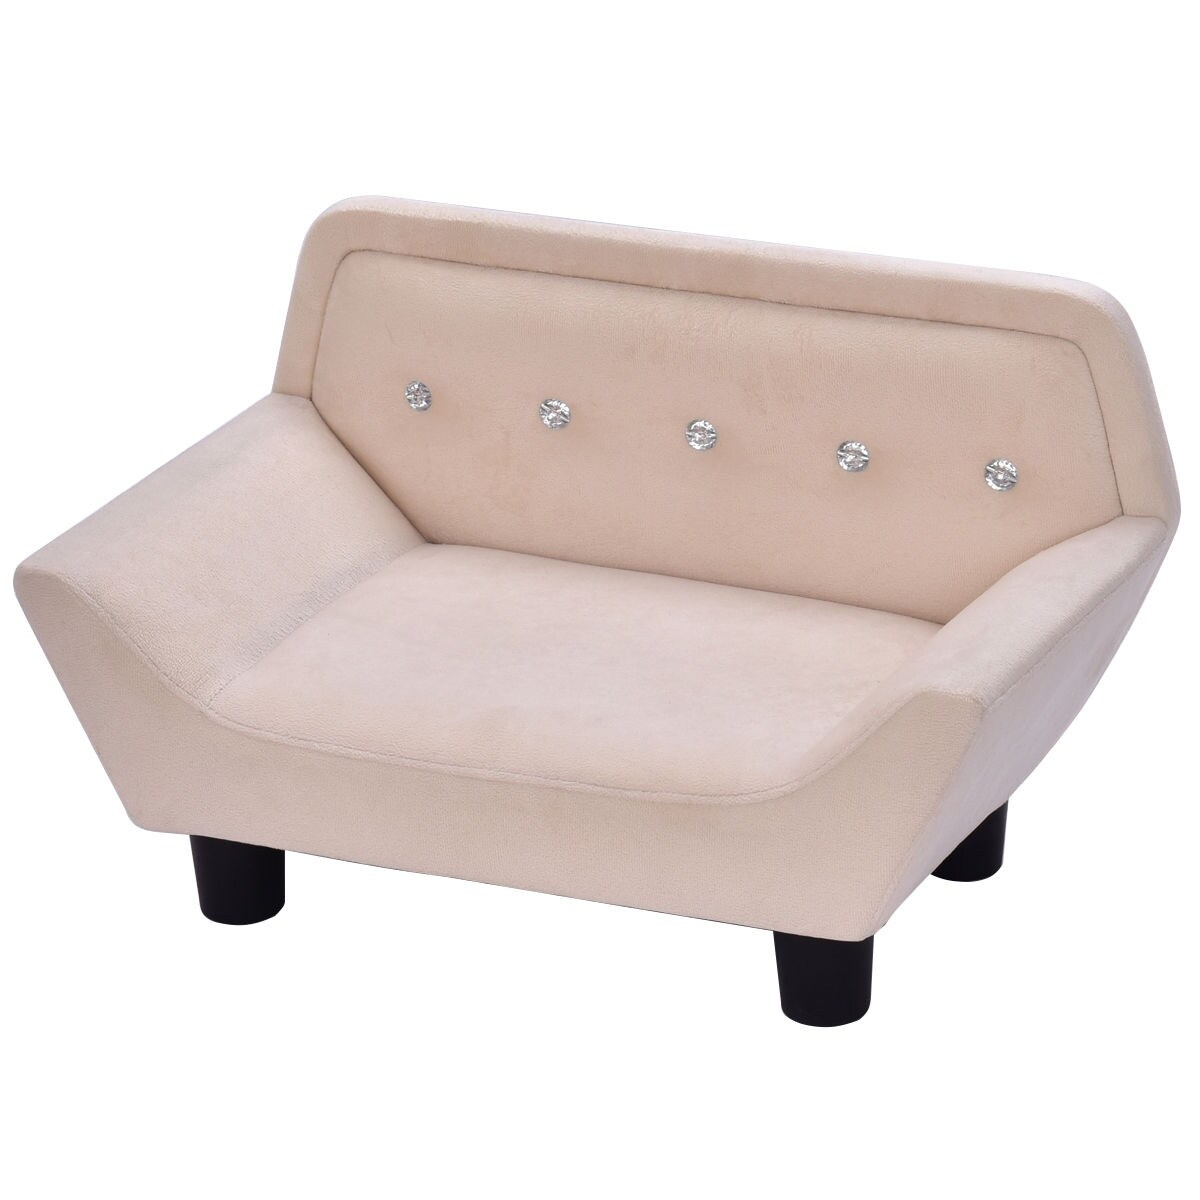 Shop Costway Beige Ultra Plush Soft Velvet Snuggle Pet Lounge Sofa Dog And  Puppy Bed   Free Shipping Today   Overstock.com   17996788